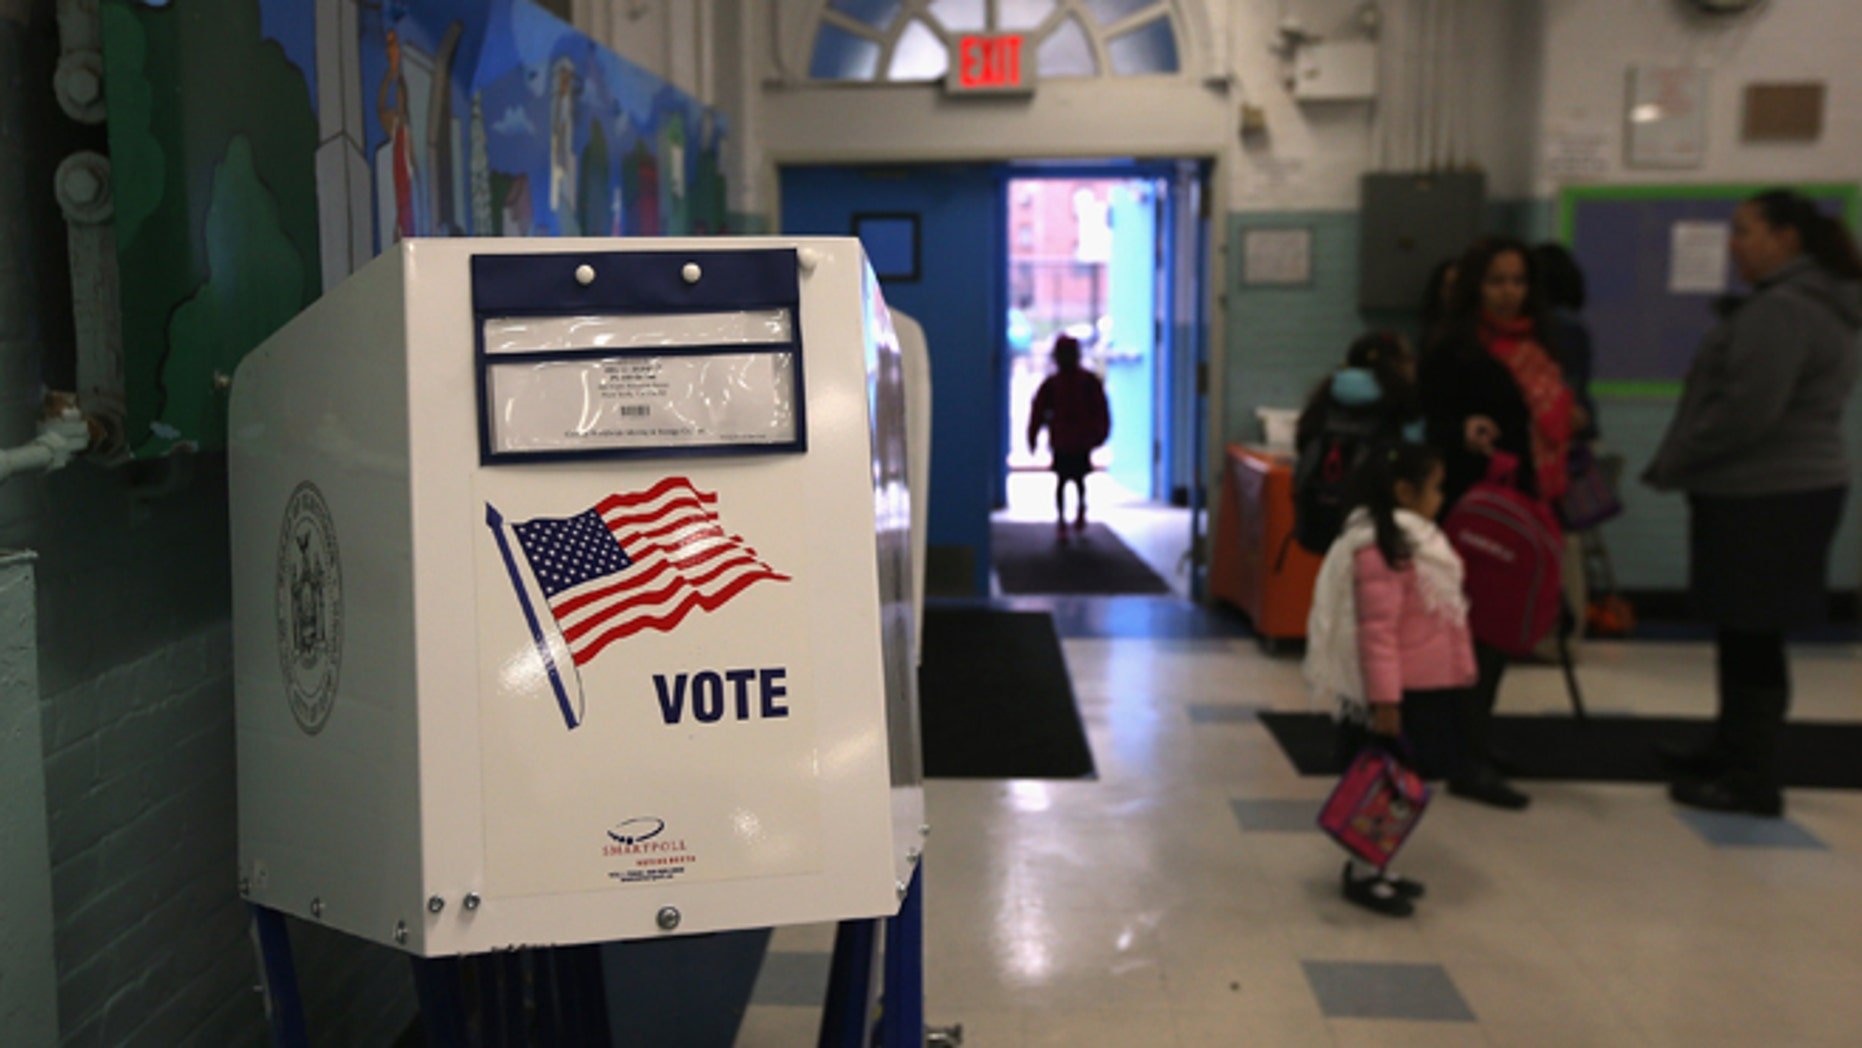 During the 2016 presidential election, some state and local election officials were not even initially aware that their systems were targeted because they did not have appropriate security clearance from federal intelligence agencies to be told about it. The bill establishes a one-day security clearance, so, for example, if the CIA detects an attempted foreign intrusion of a state or county system, a local official can be alerted.